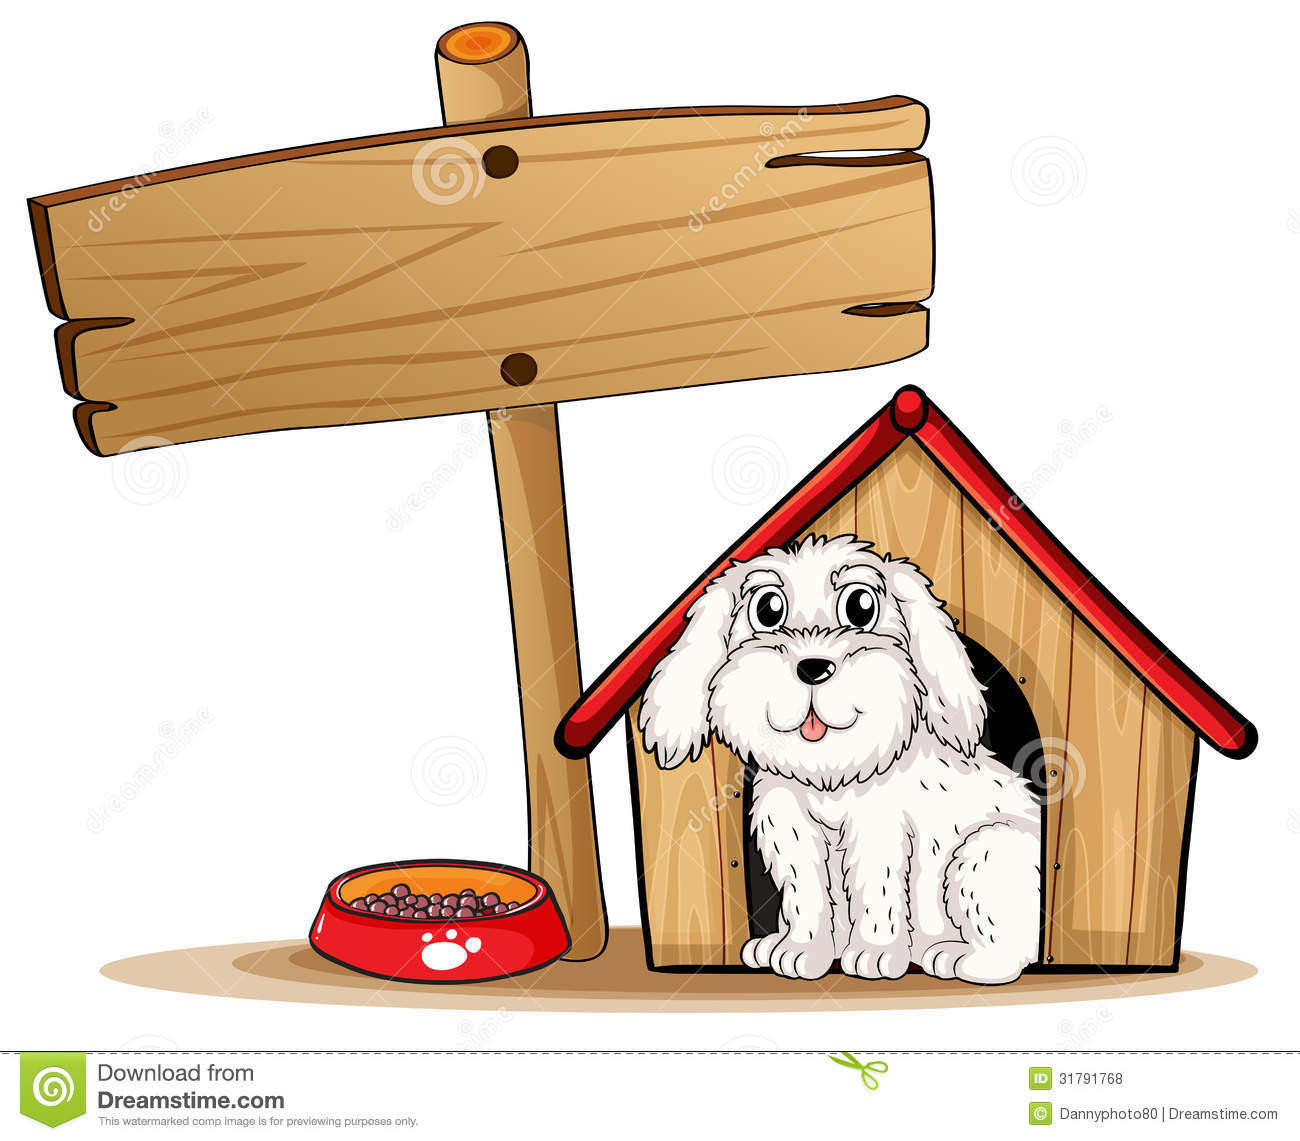 inside house background clipart. background dog house illustration inside clipart a